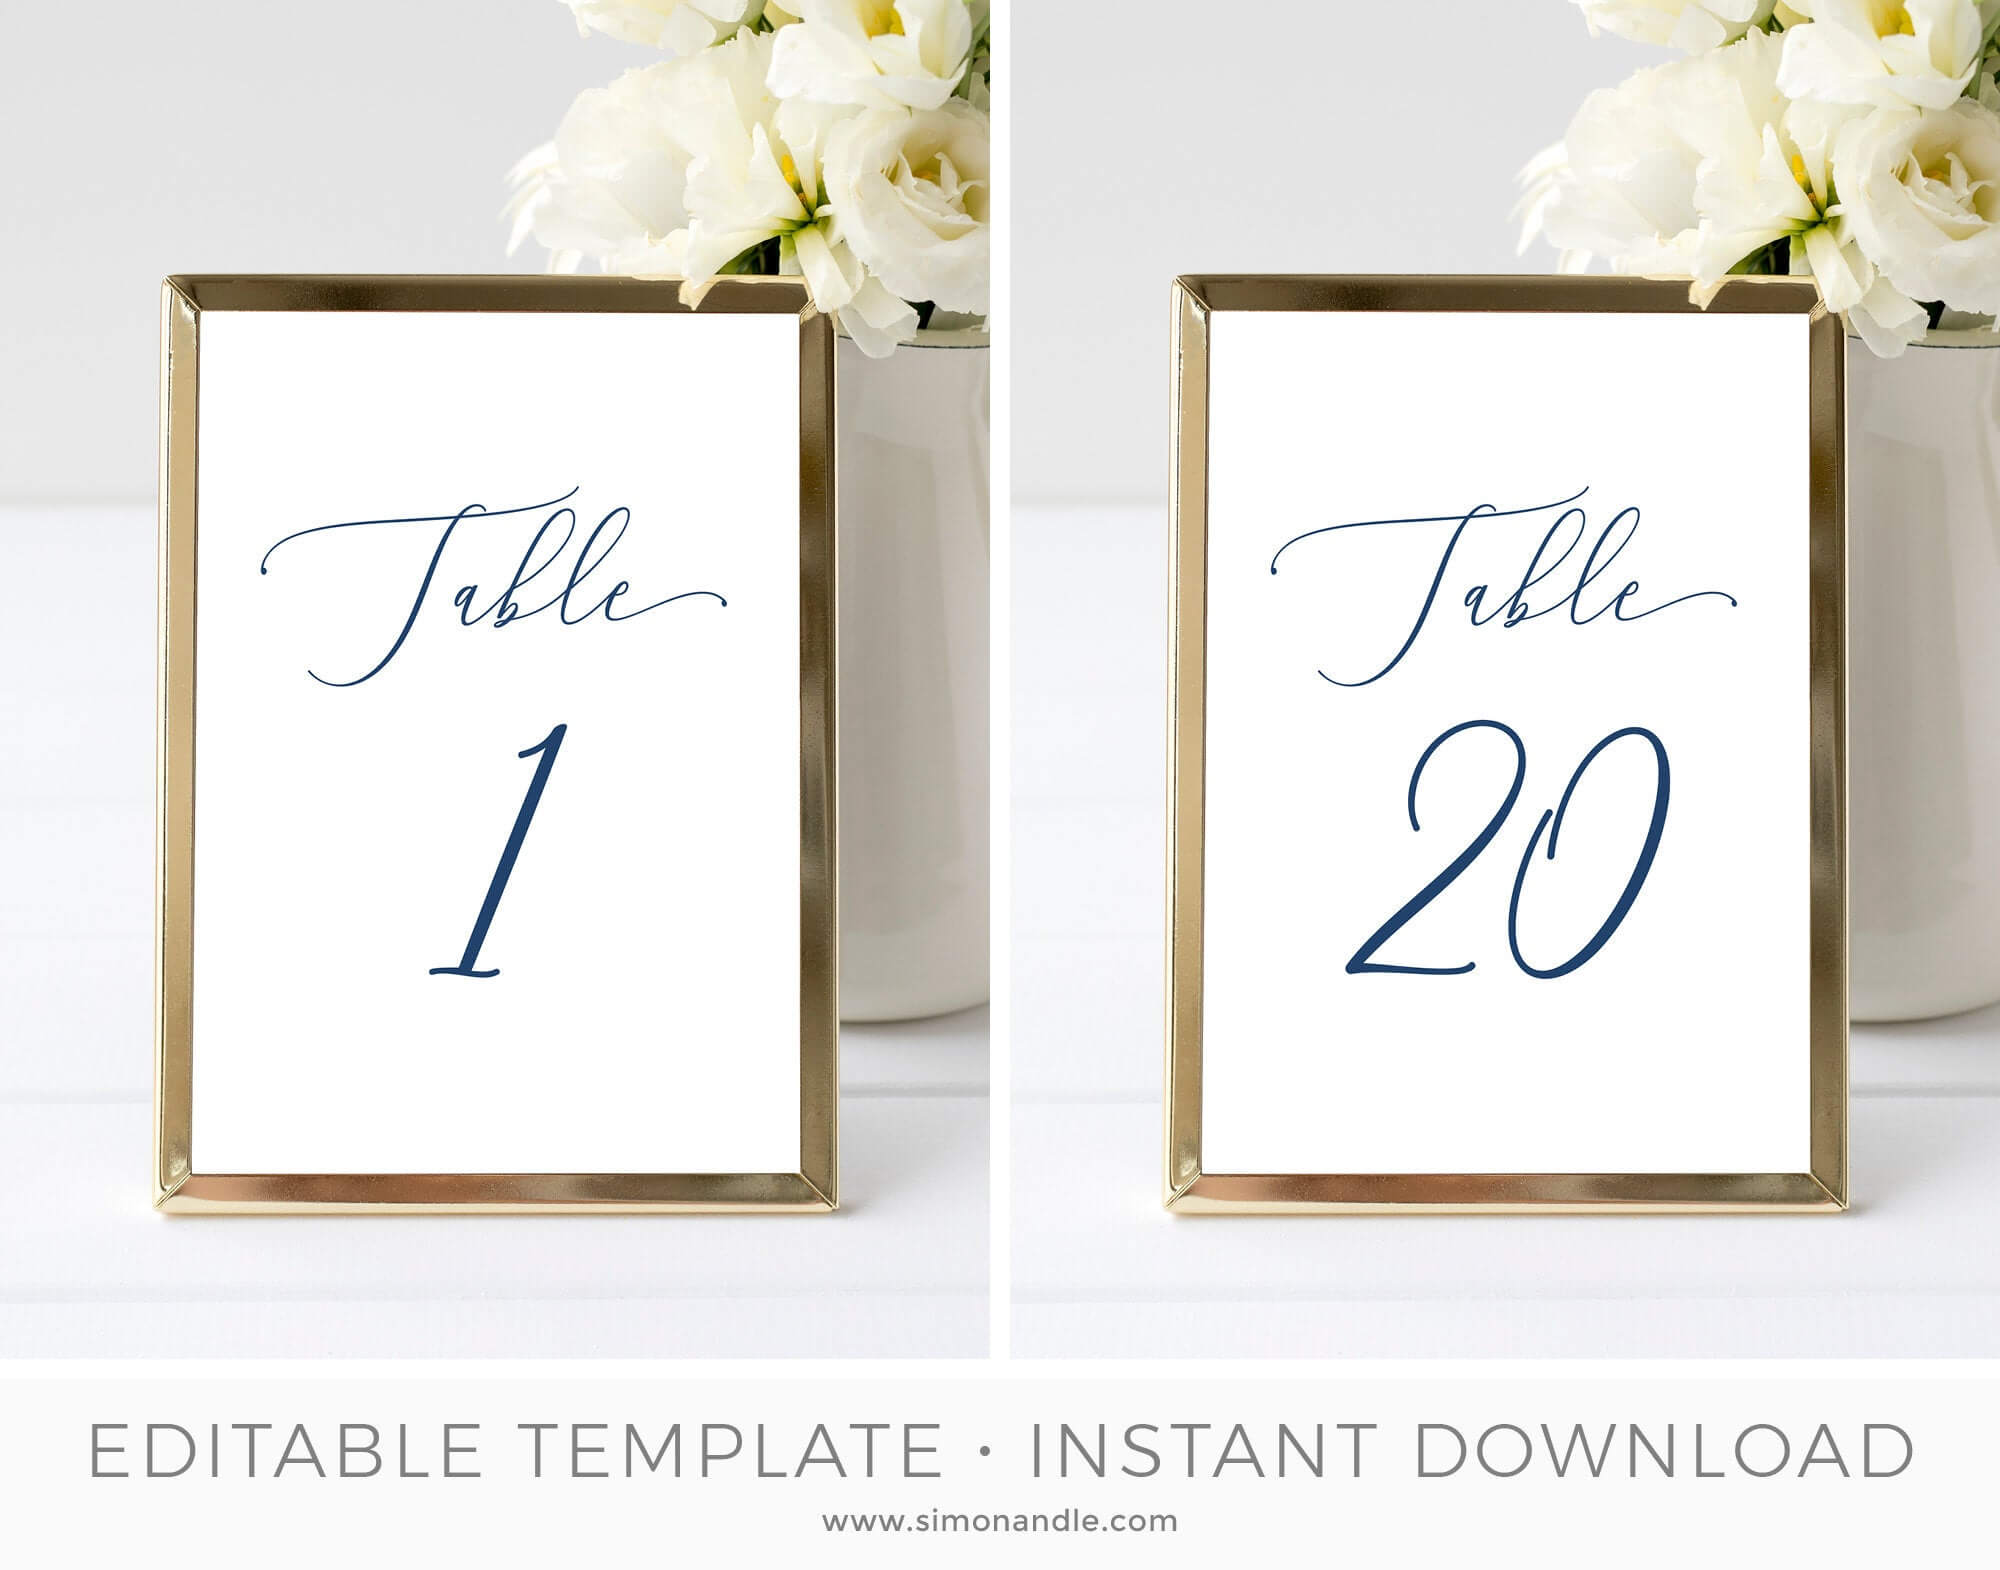 Table Number Card Template, Table Seating Cards, Hamptons Wedding Table  Setting, Beach Wedding, Editable, Printable   Instant Download inside Table Number Cards Template